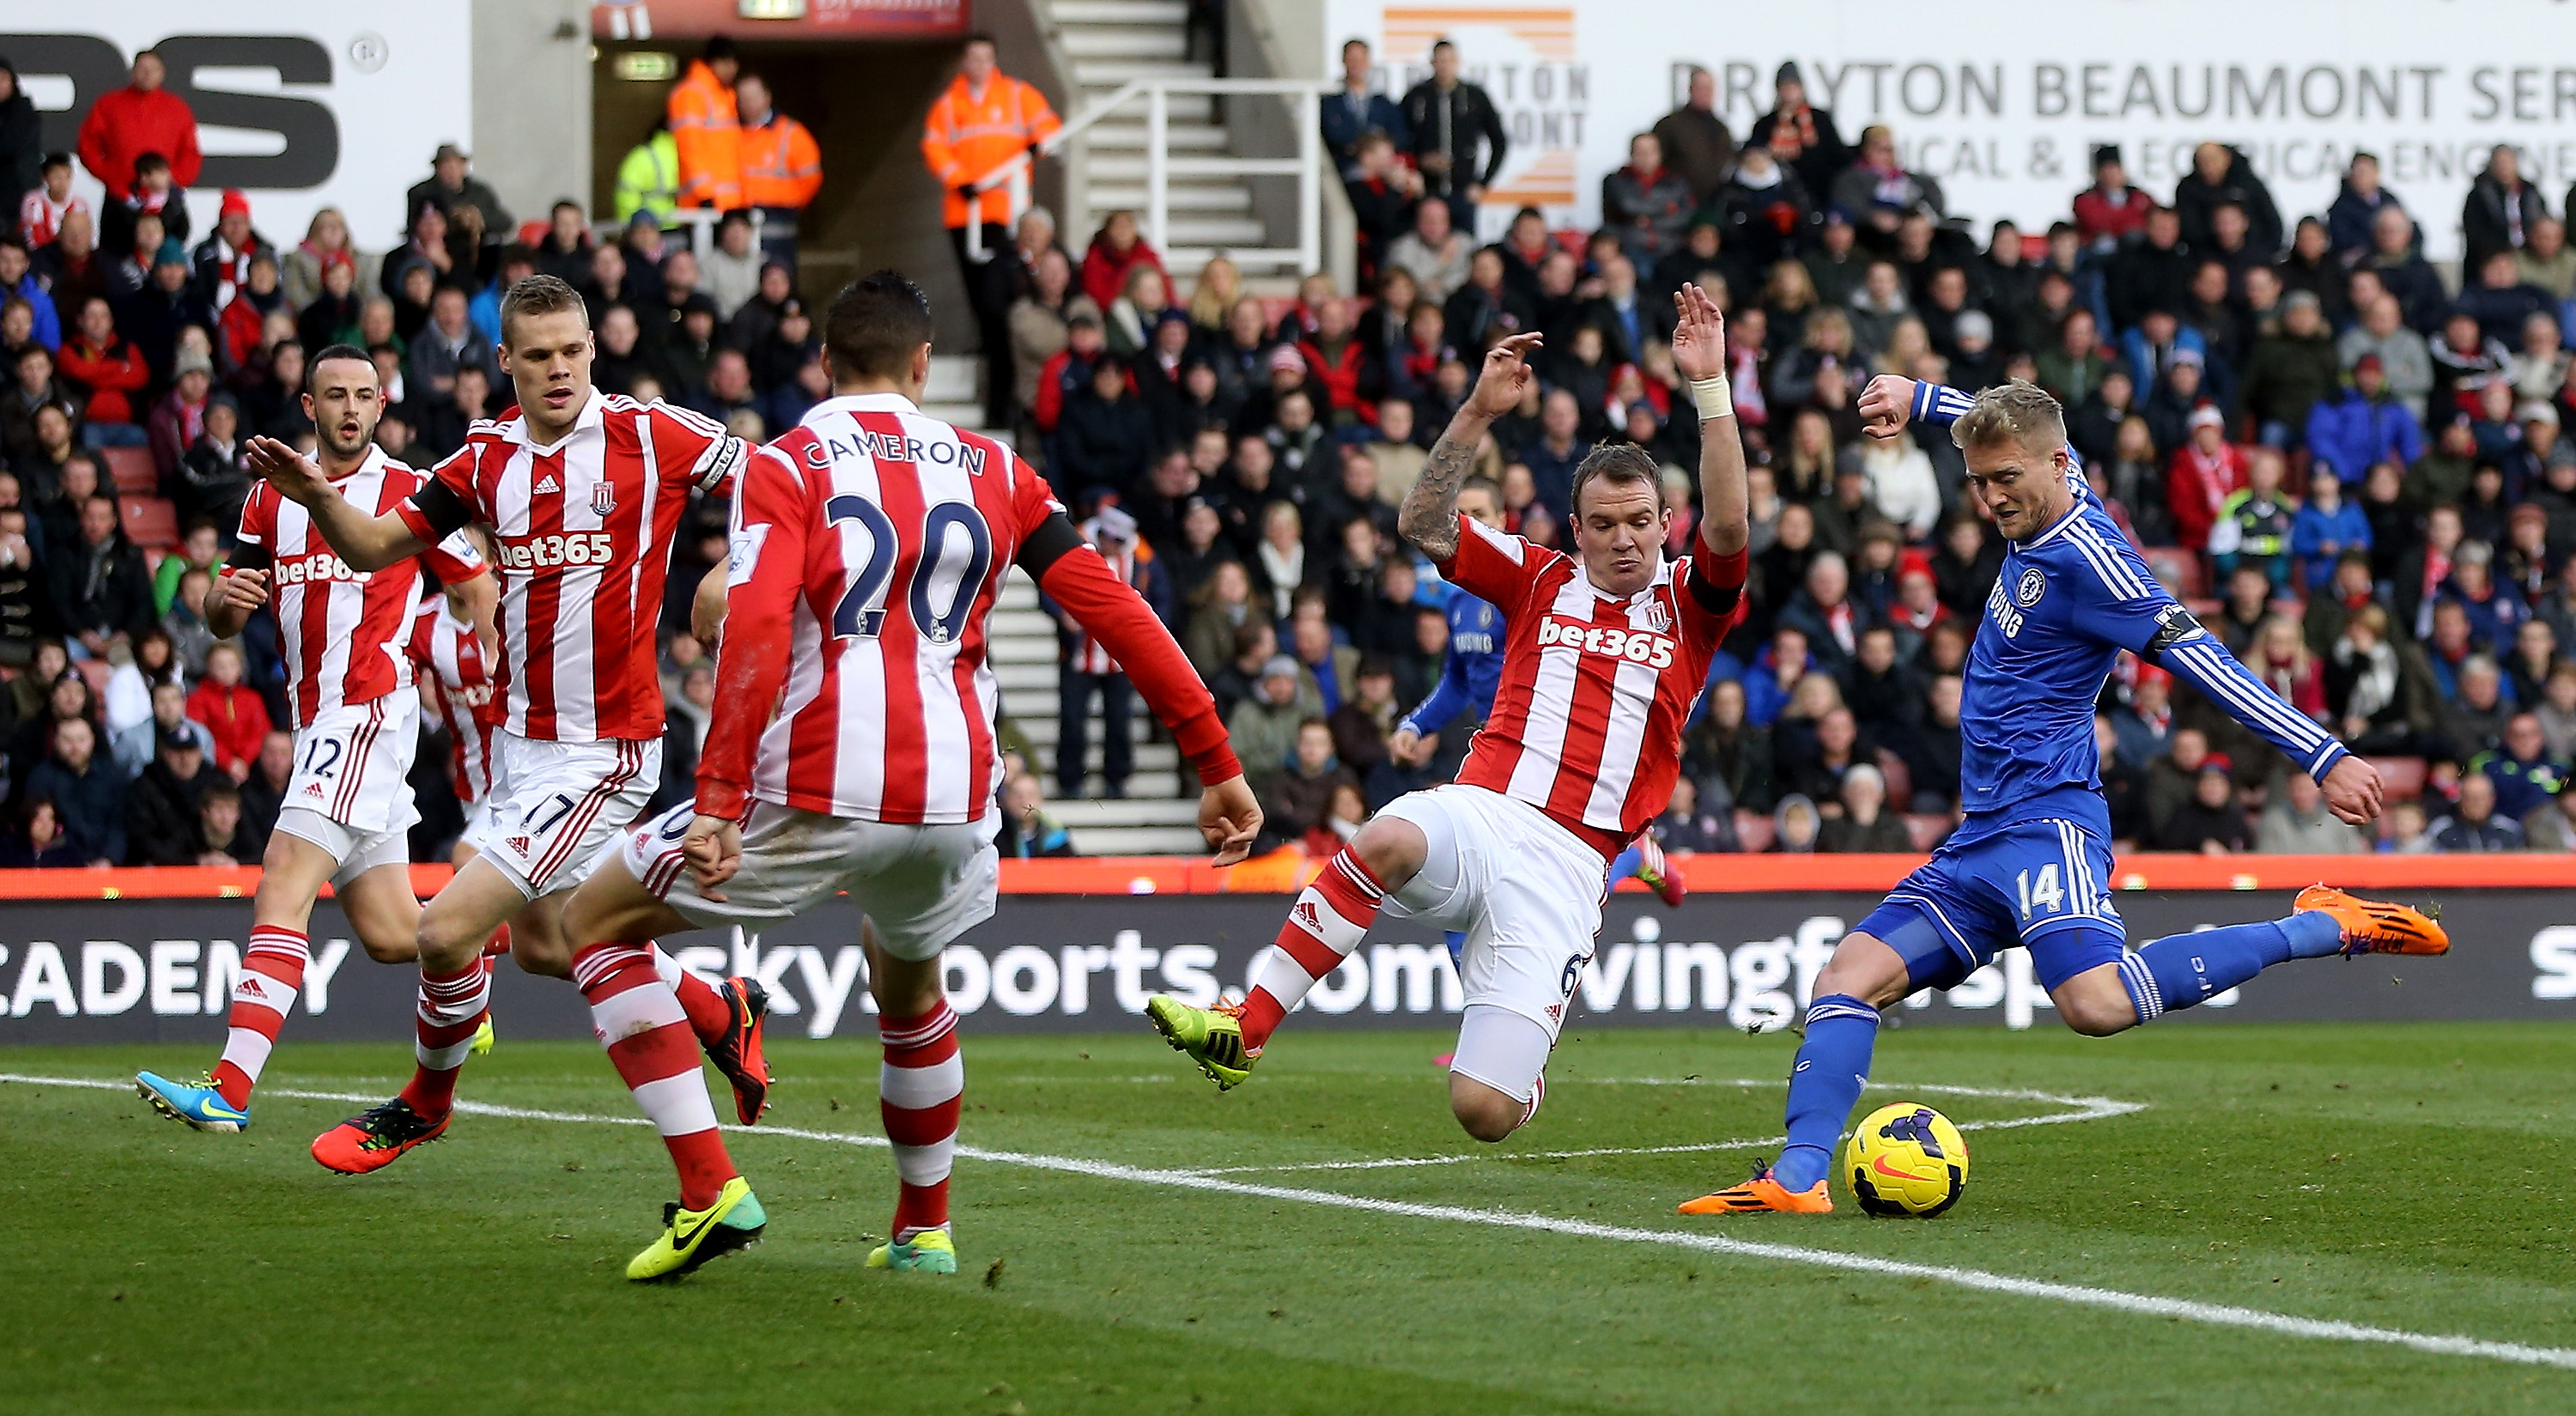 Chelsea Vs Stoke City Live Stream 04 03 2016 Hd You